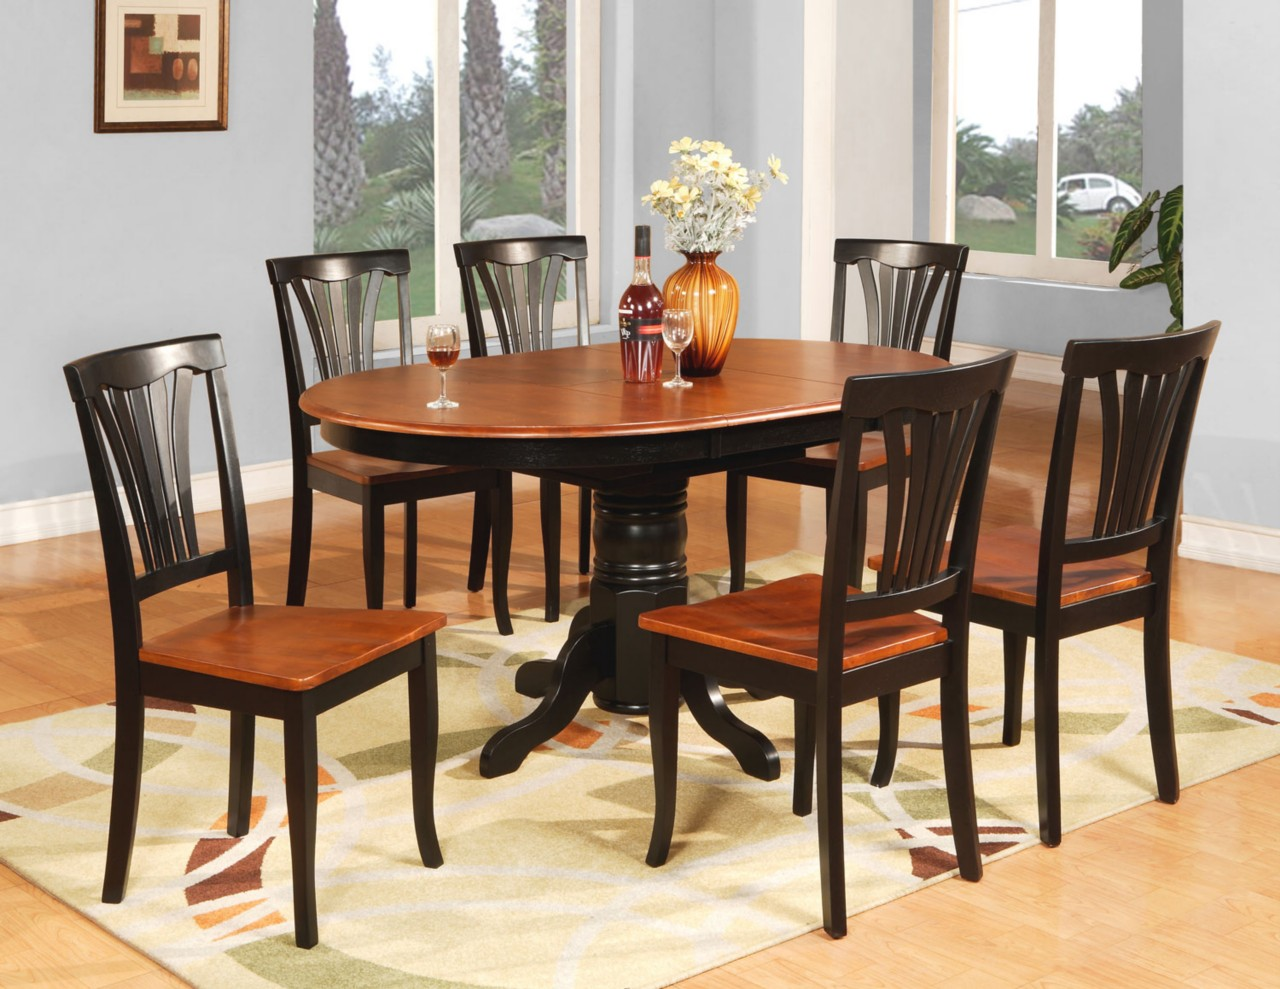 7 pc oval dinette kitchen dining room table 6 chairs ebay for Kitchen table sets with bench and chairs